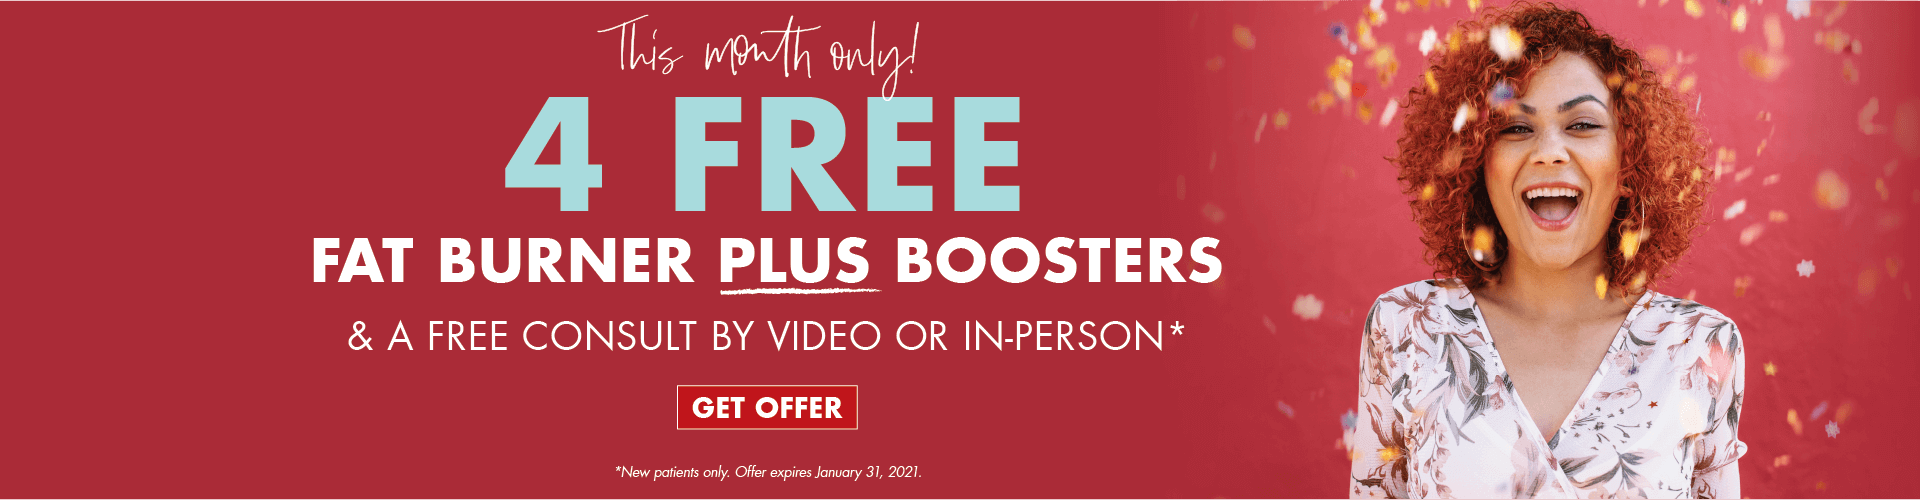 4 FREE Boosters and FREE Consult for new patients